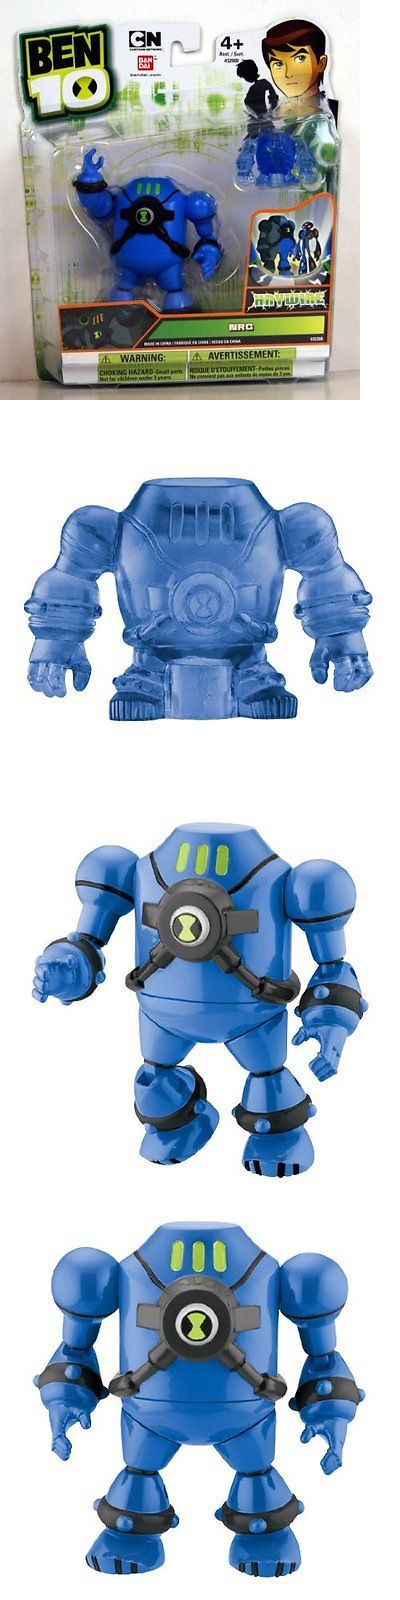 Ben 10 152906: Ben 10 Ultimate Alien 4 Nrg Haywire Includes Minifigure -> BUY IT NOW ONLY: $47.2 on eBay!